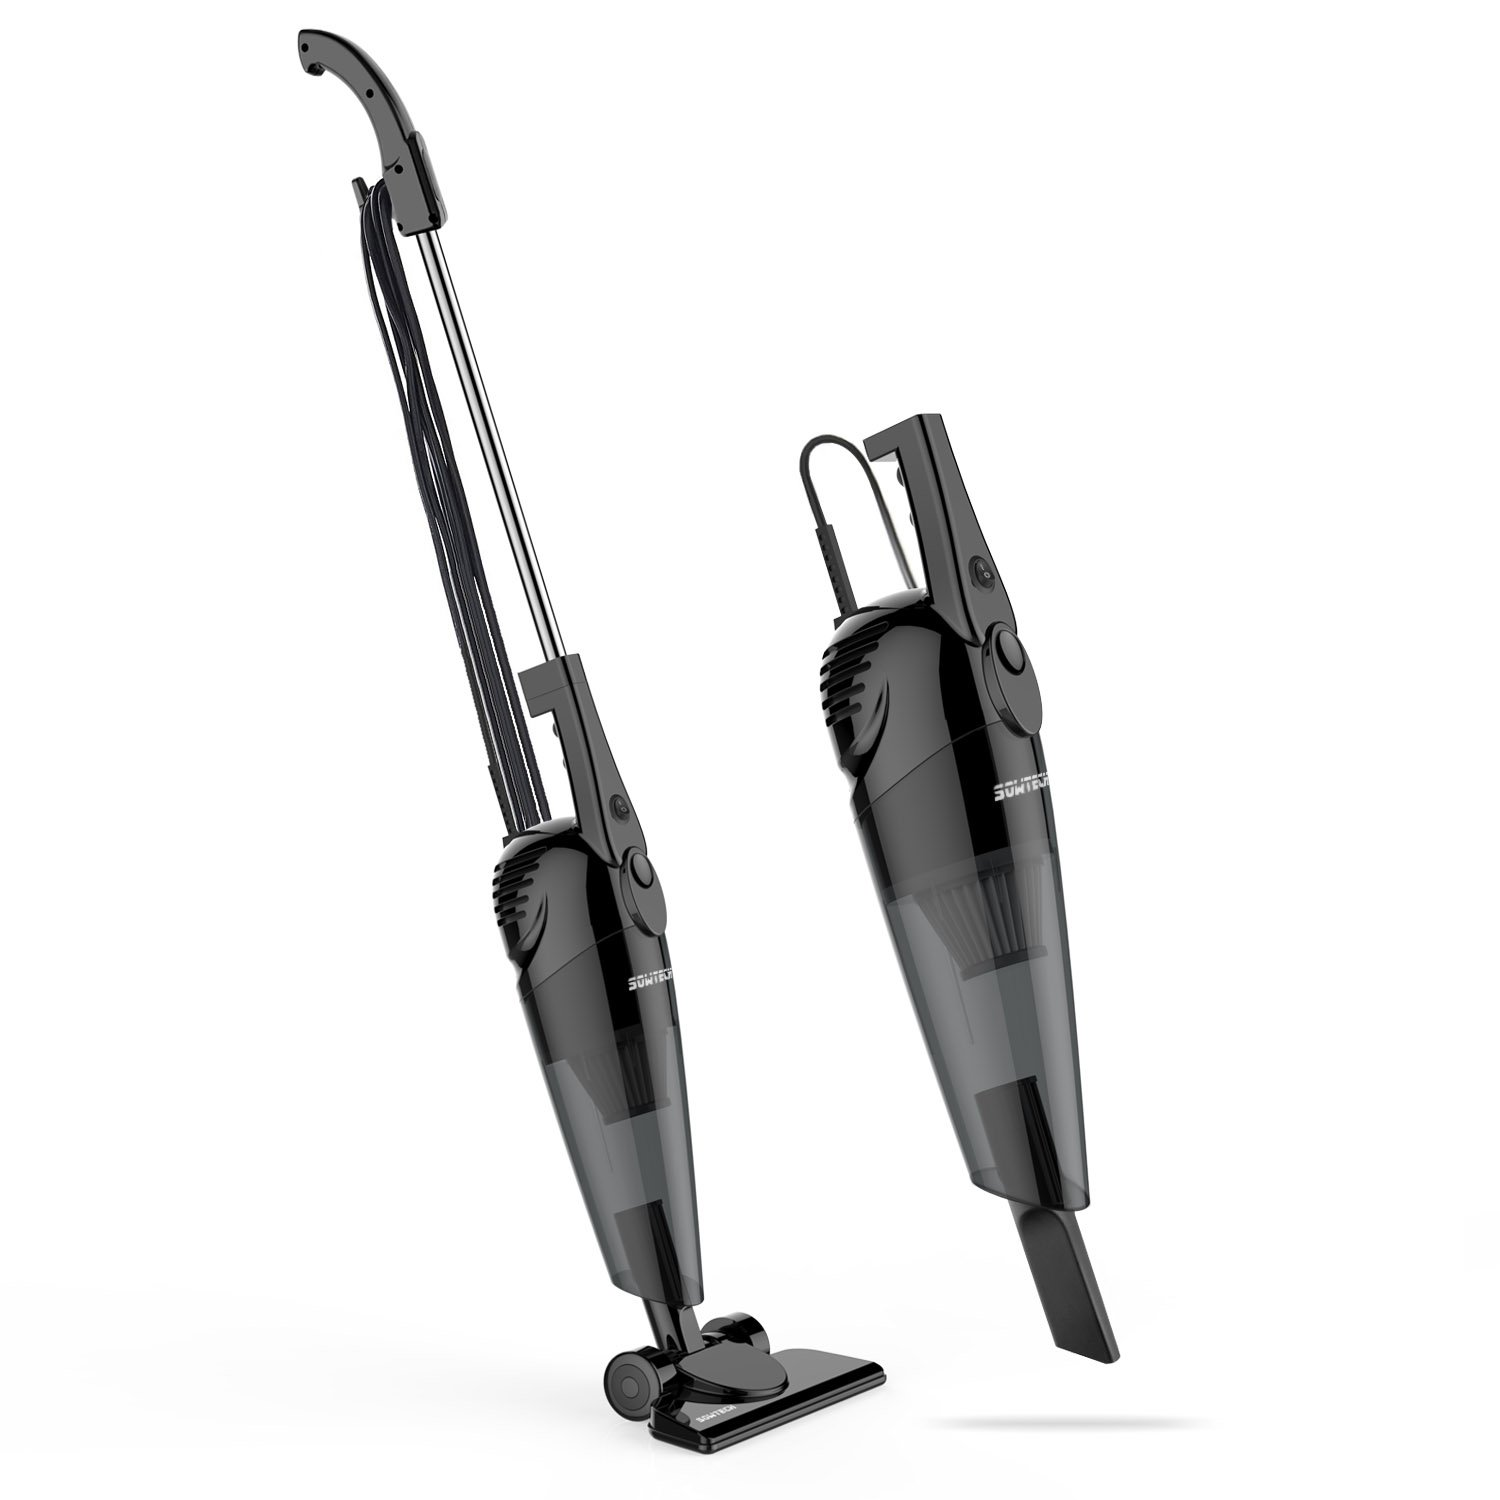 SOWTECH Stick Vacuum 2 in 1 Lightweight Corded Upright and Handheld Vacuum Cleaner, HEPA Filtration (Bagless), Come with Crevice Tool and Brush Accessories ST-HM201